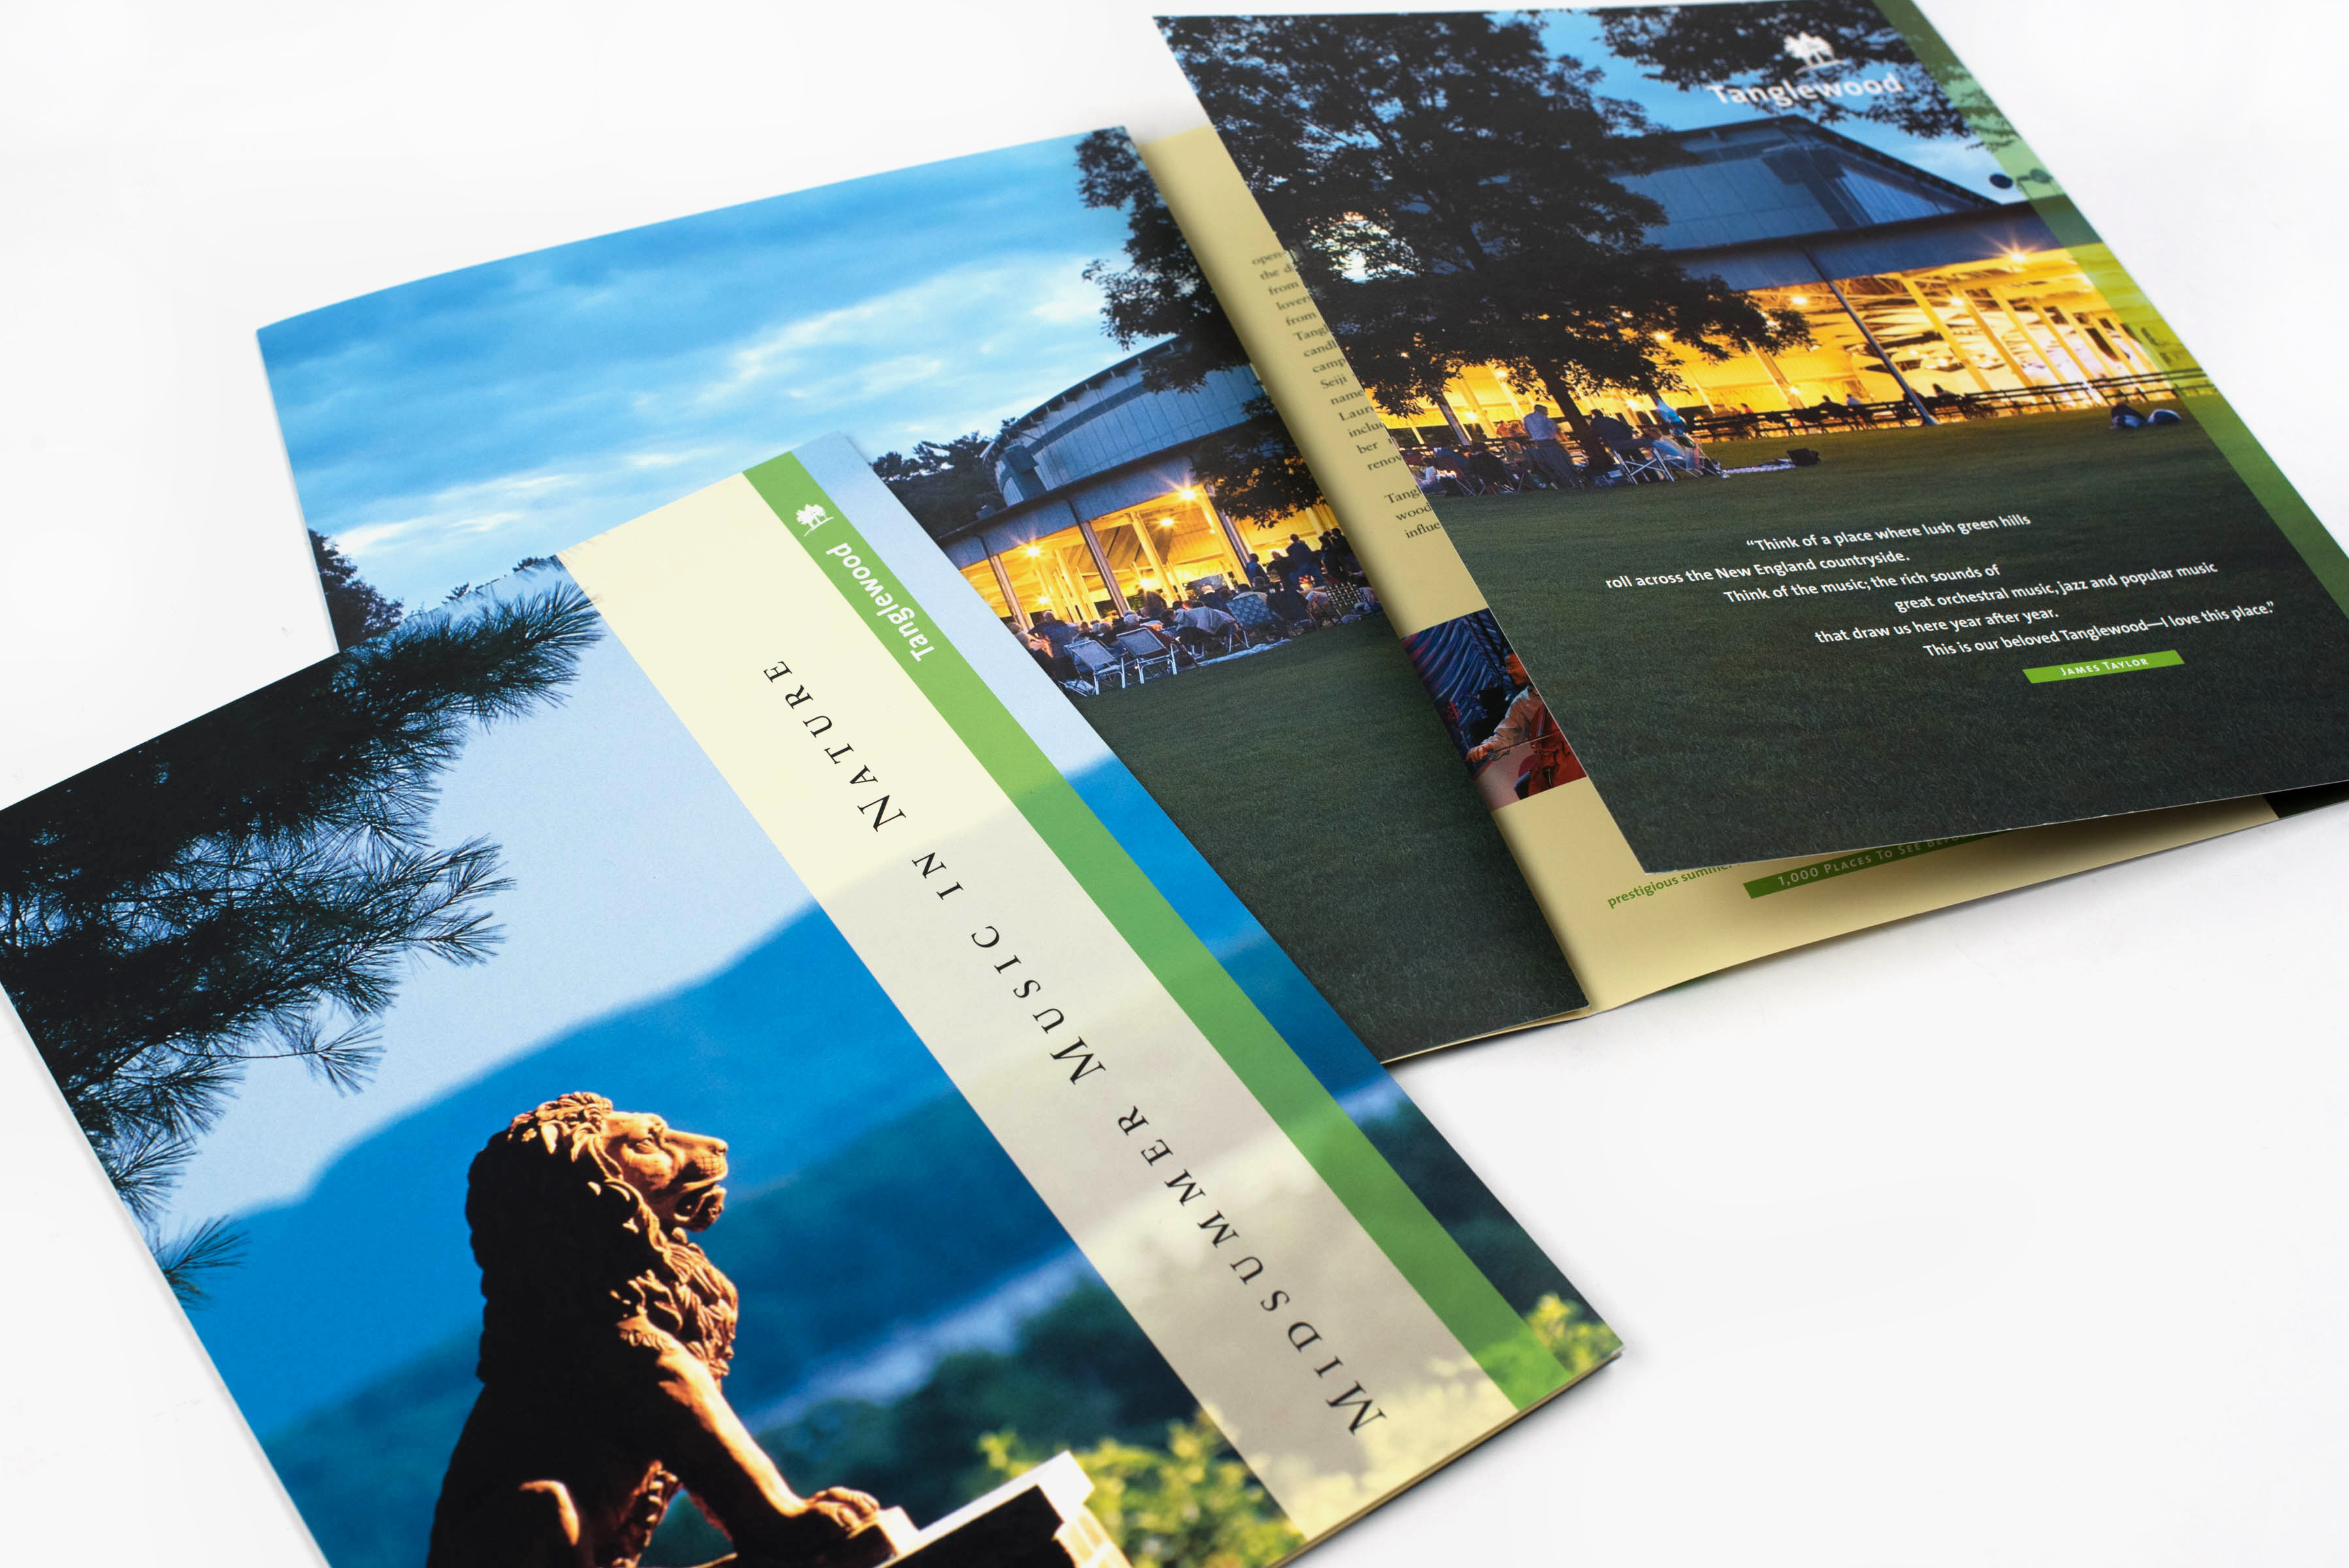 Boston Symphony Orchestra Tanglewood brochure cover and interior spread: Midsummer Music in Nature